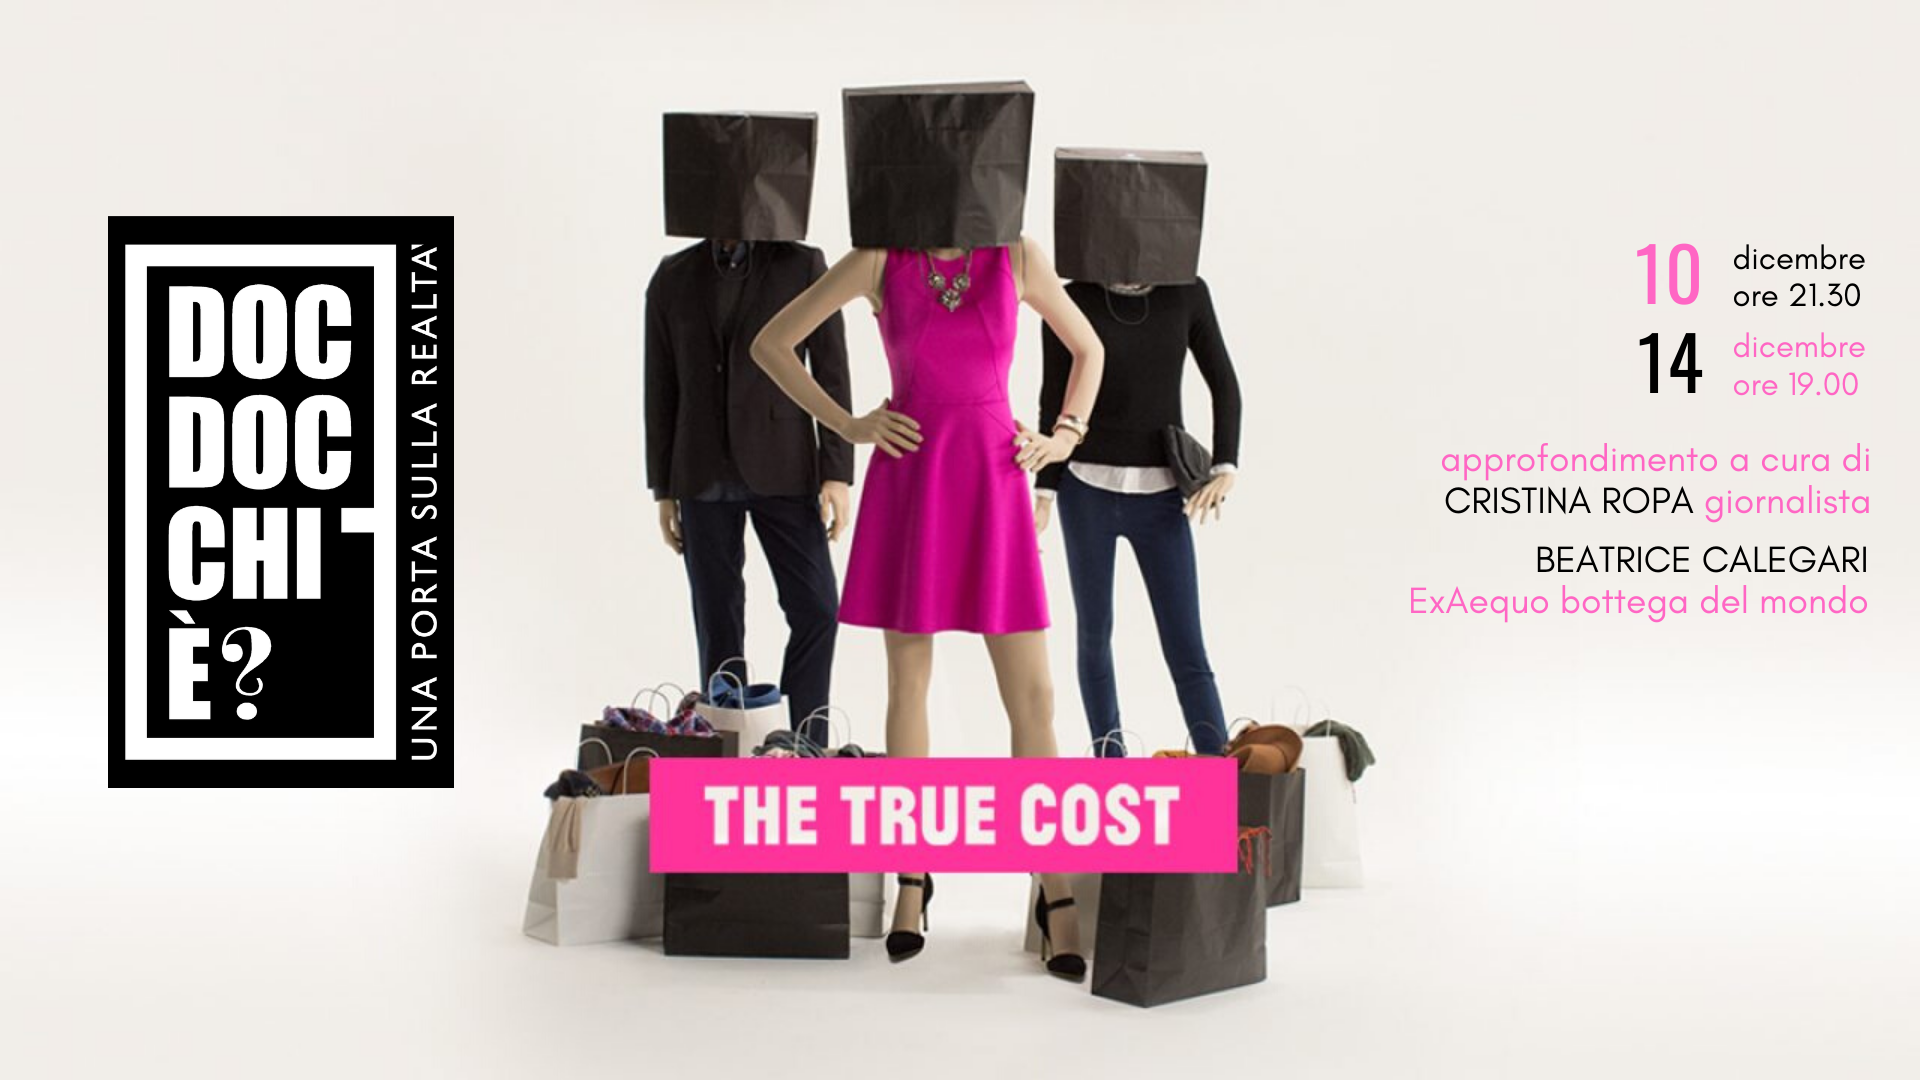 the true cost.cover evento logo doc doc ospiti